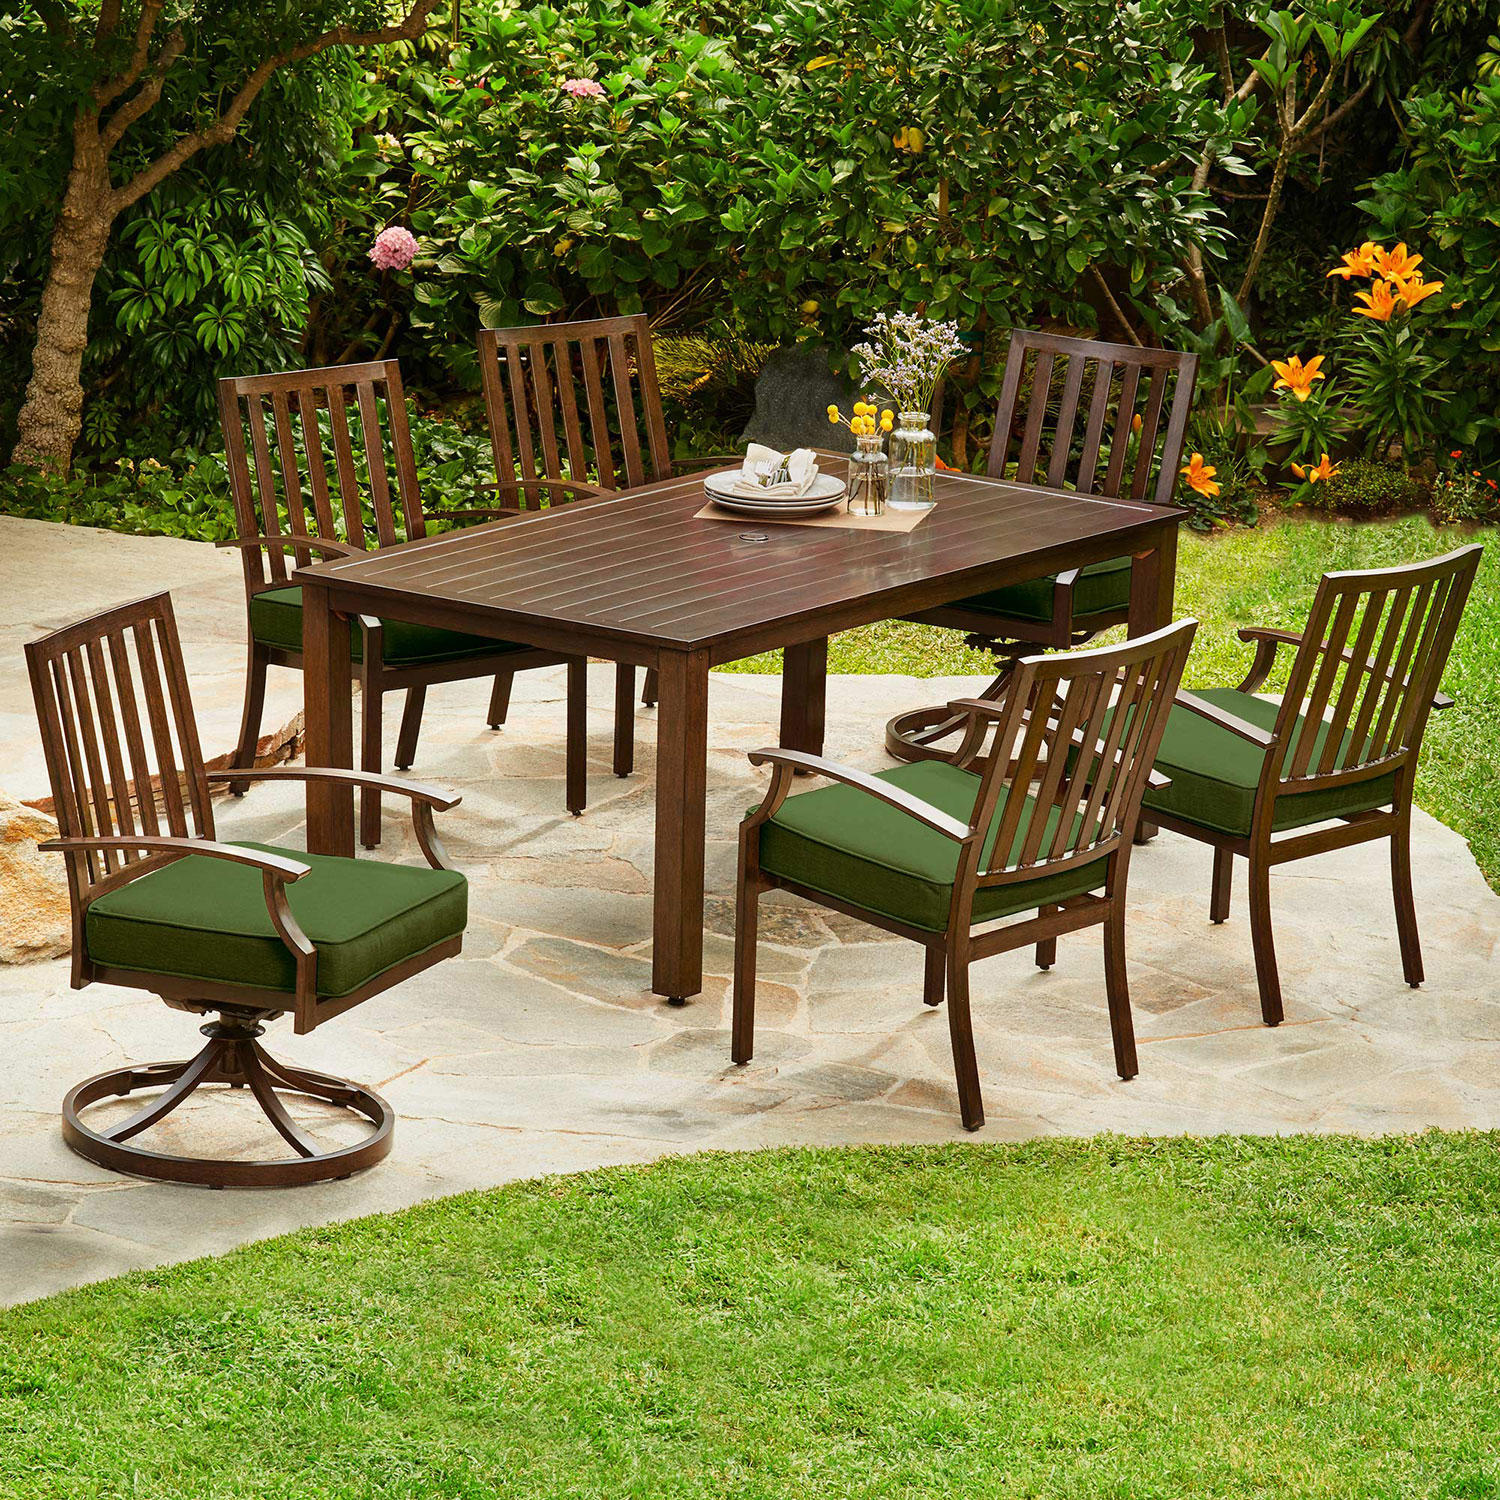 Royal Garden Oakmont 7-Piece Patio Cushion Dining Set